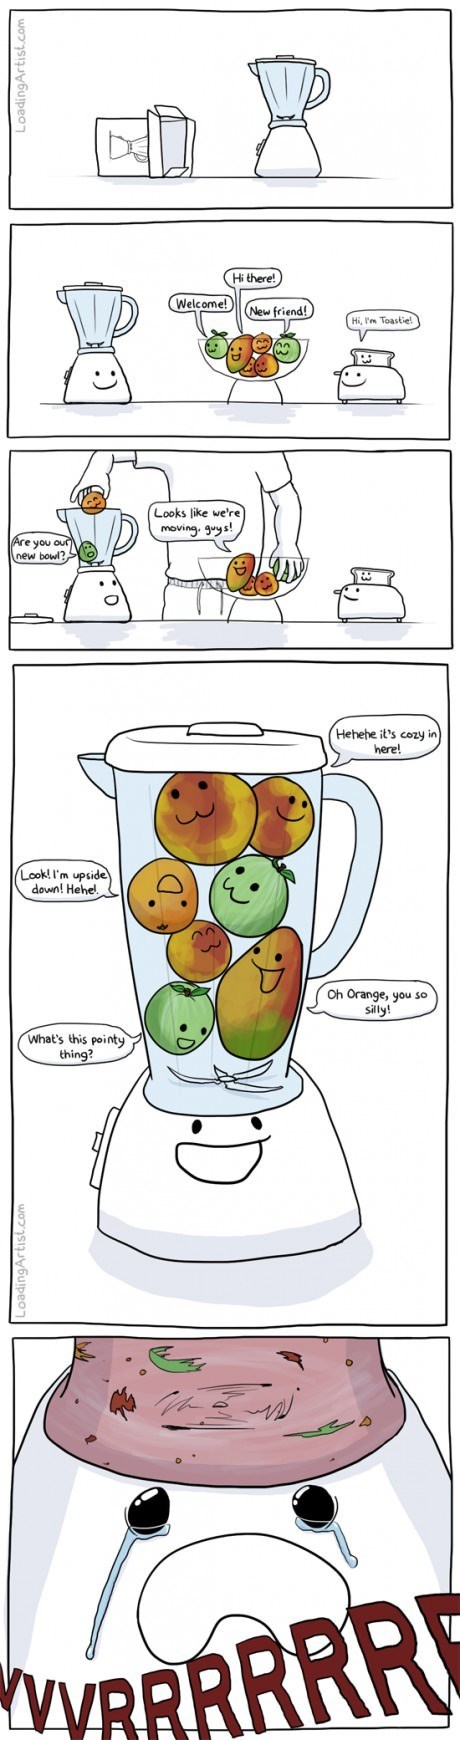 blenders fruit kitchen web comics - 8203437568